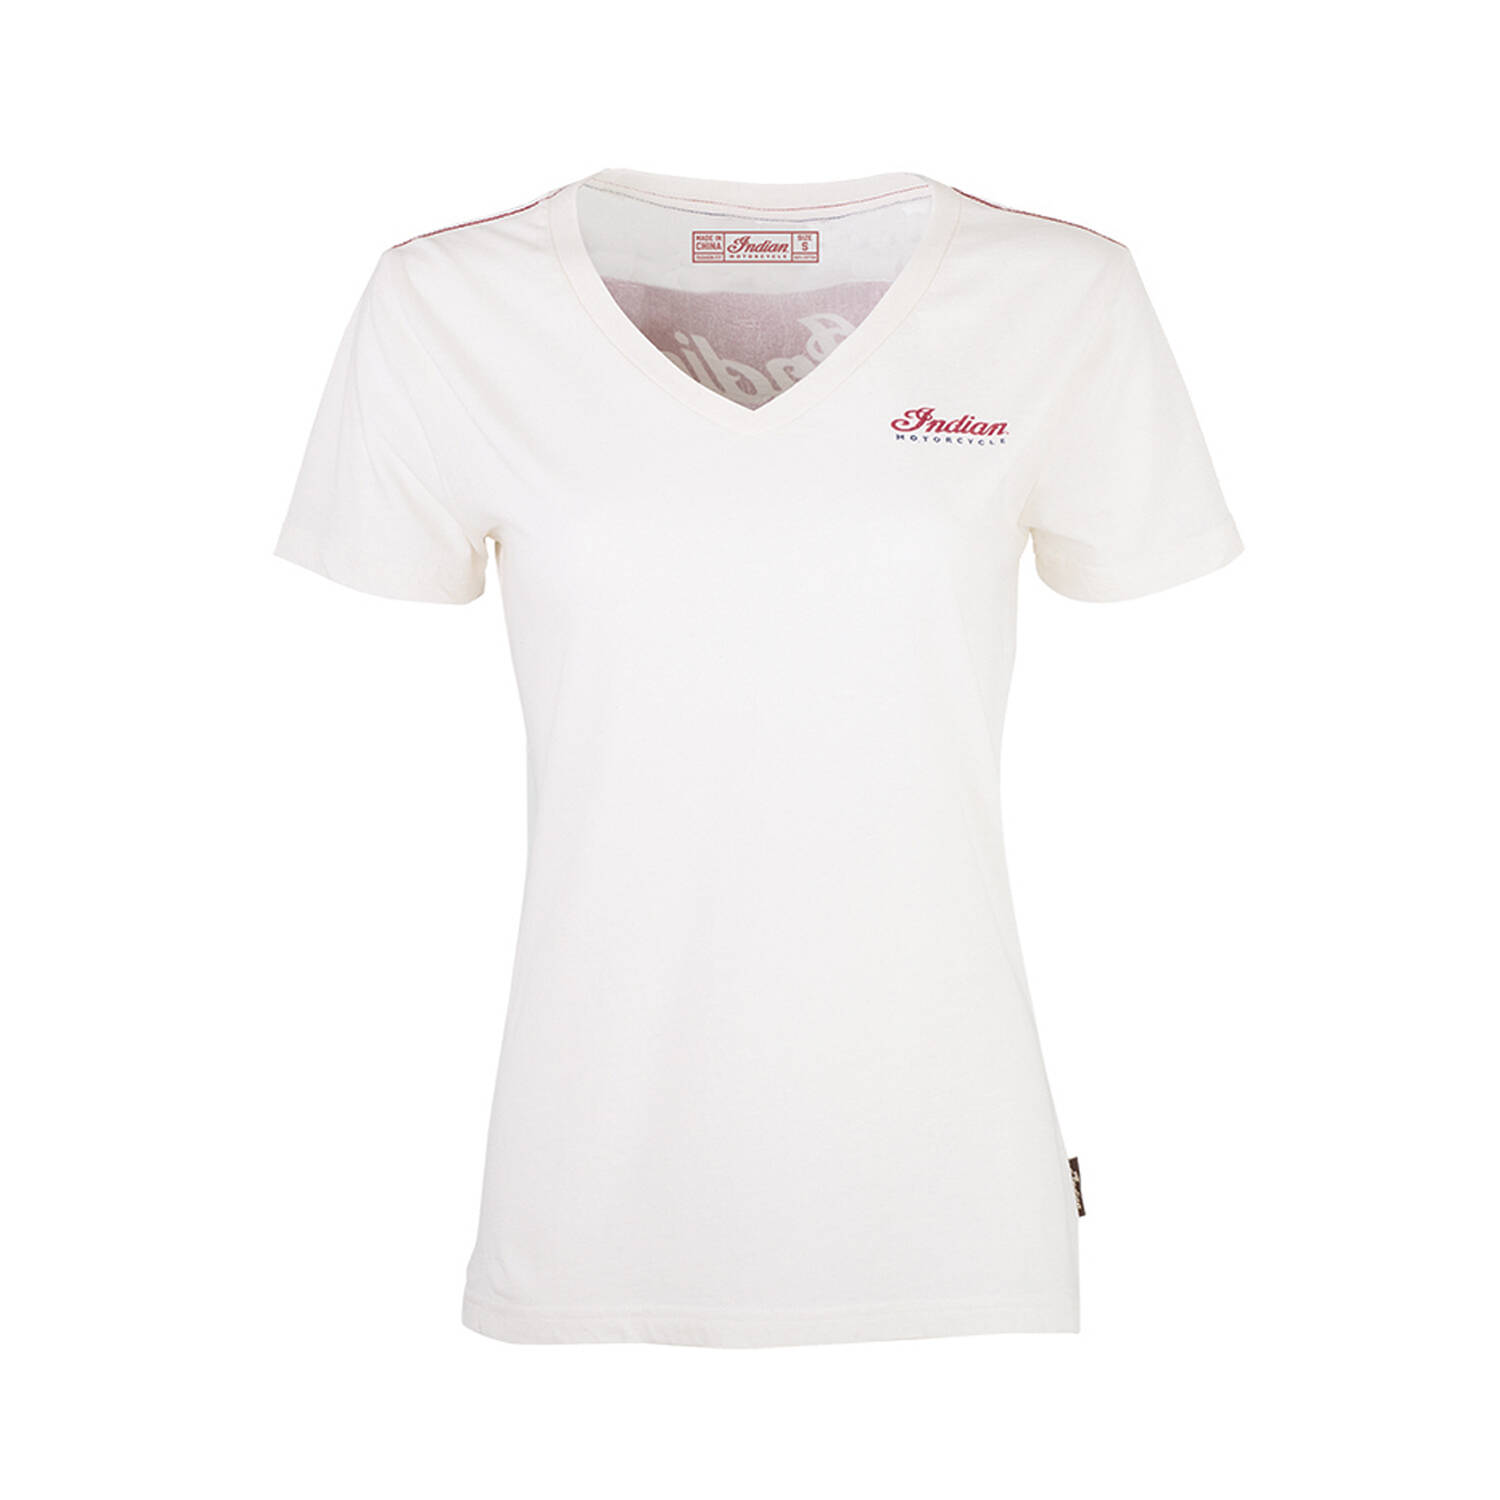 Women's FTR1200 Logo T-Shirt, White